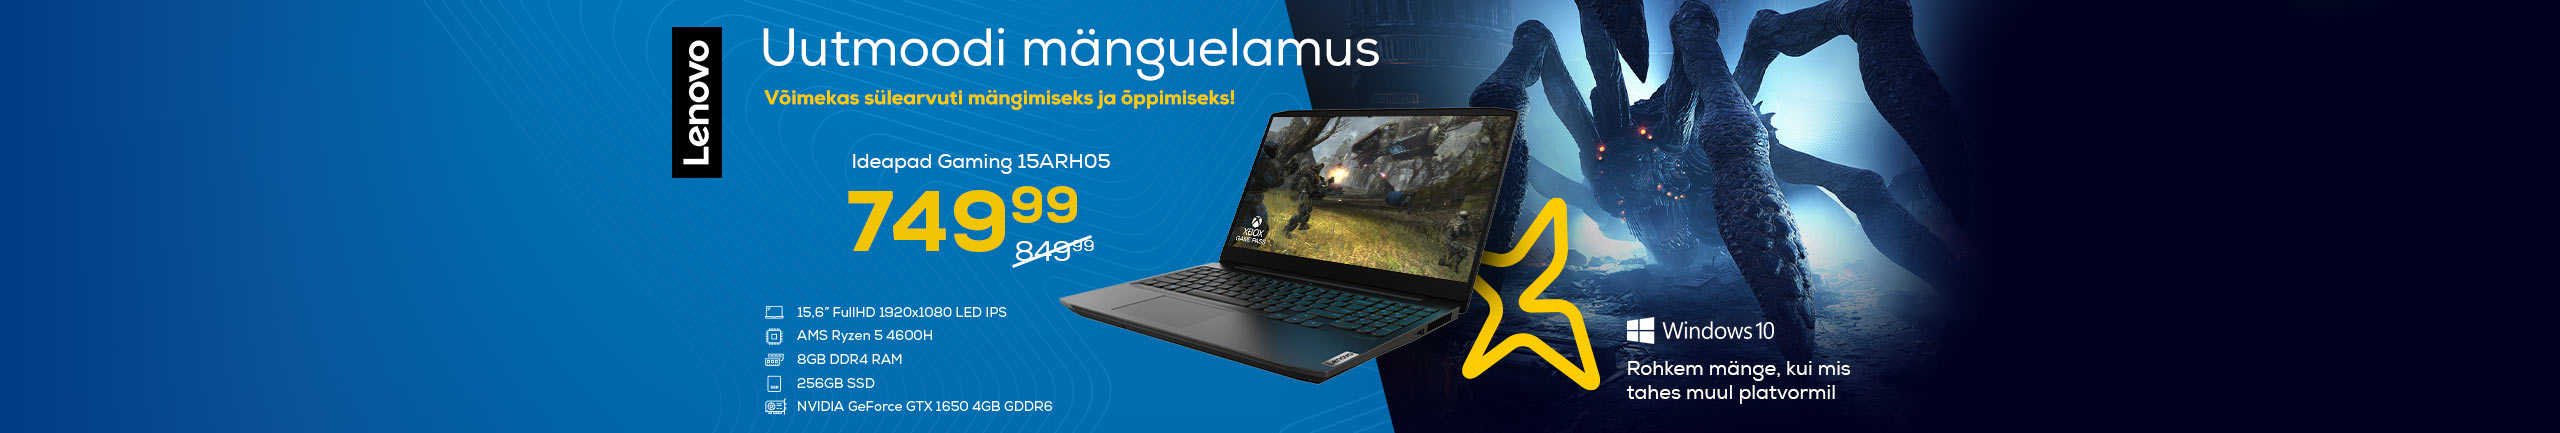 Lenovo notebook with a powerful processor for gaming and studying!